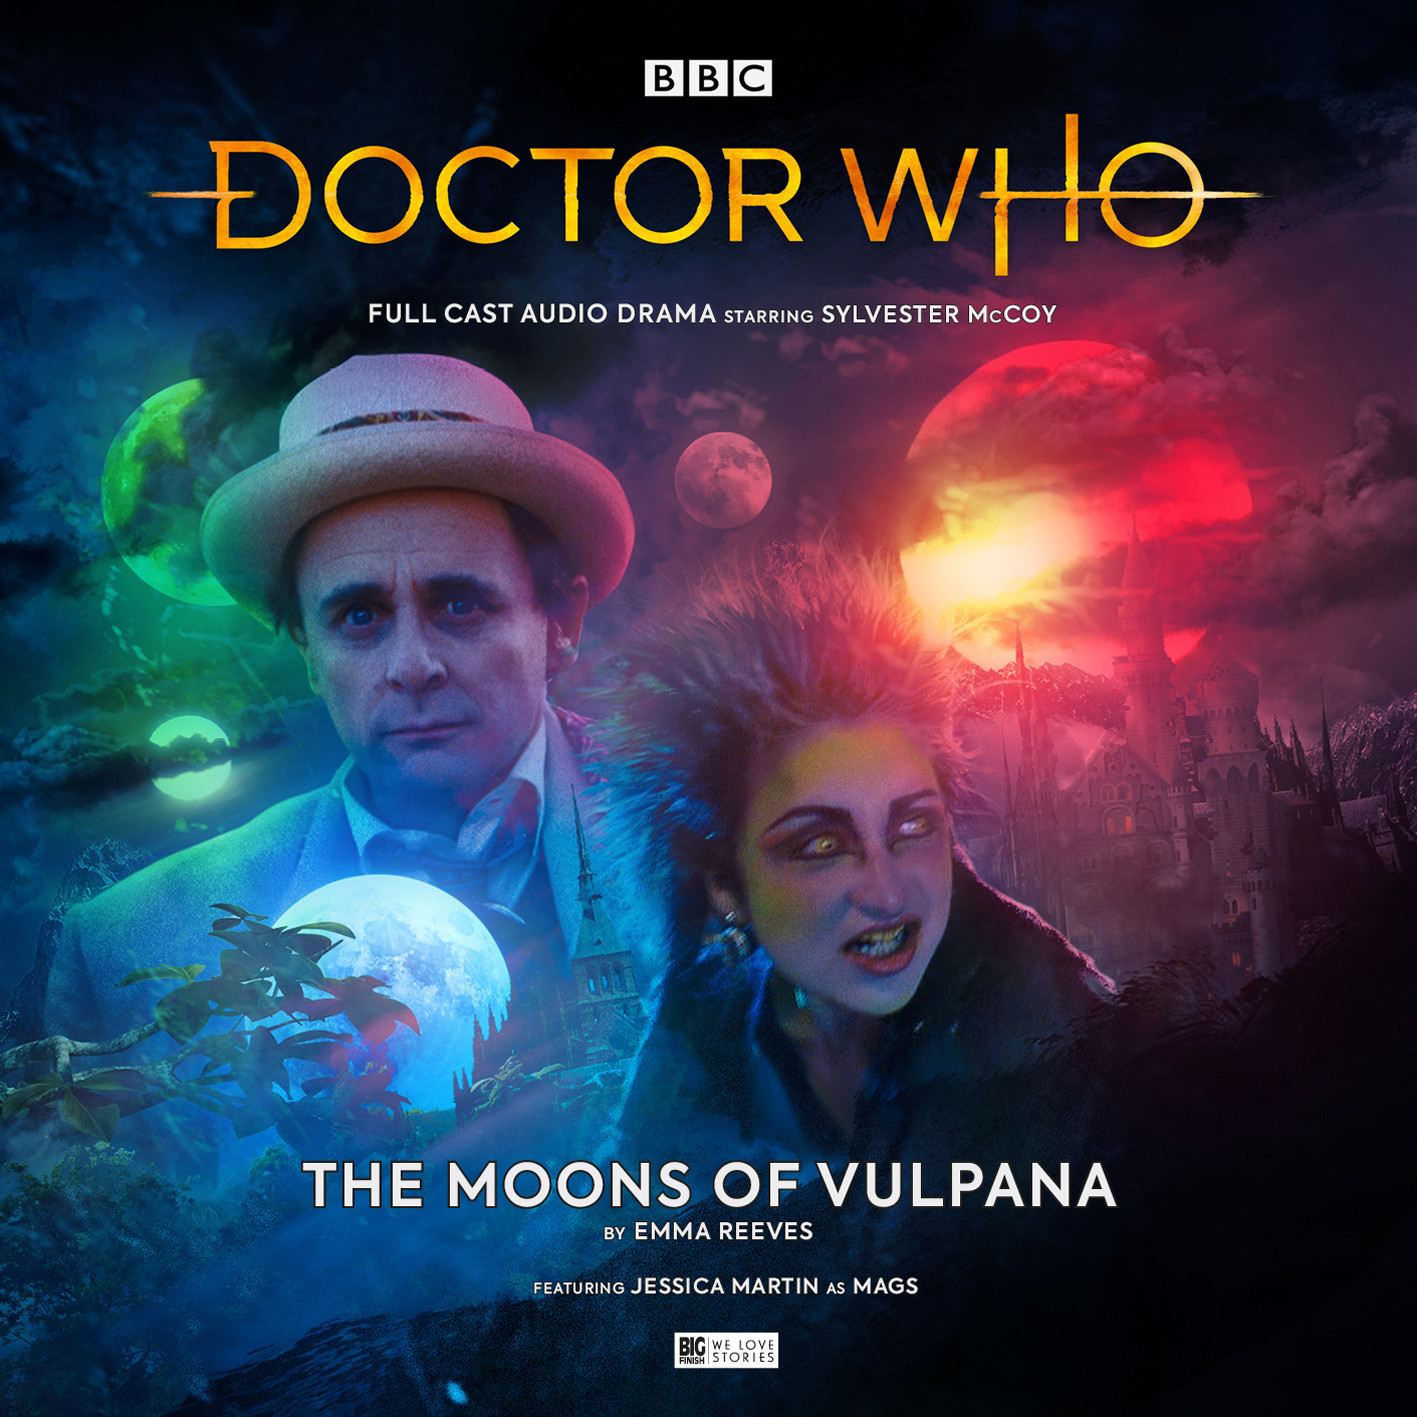 Doctor Who: The Moons of Vulpana